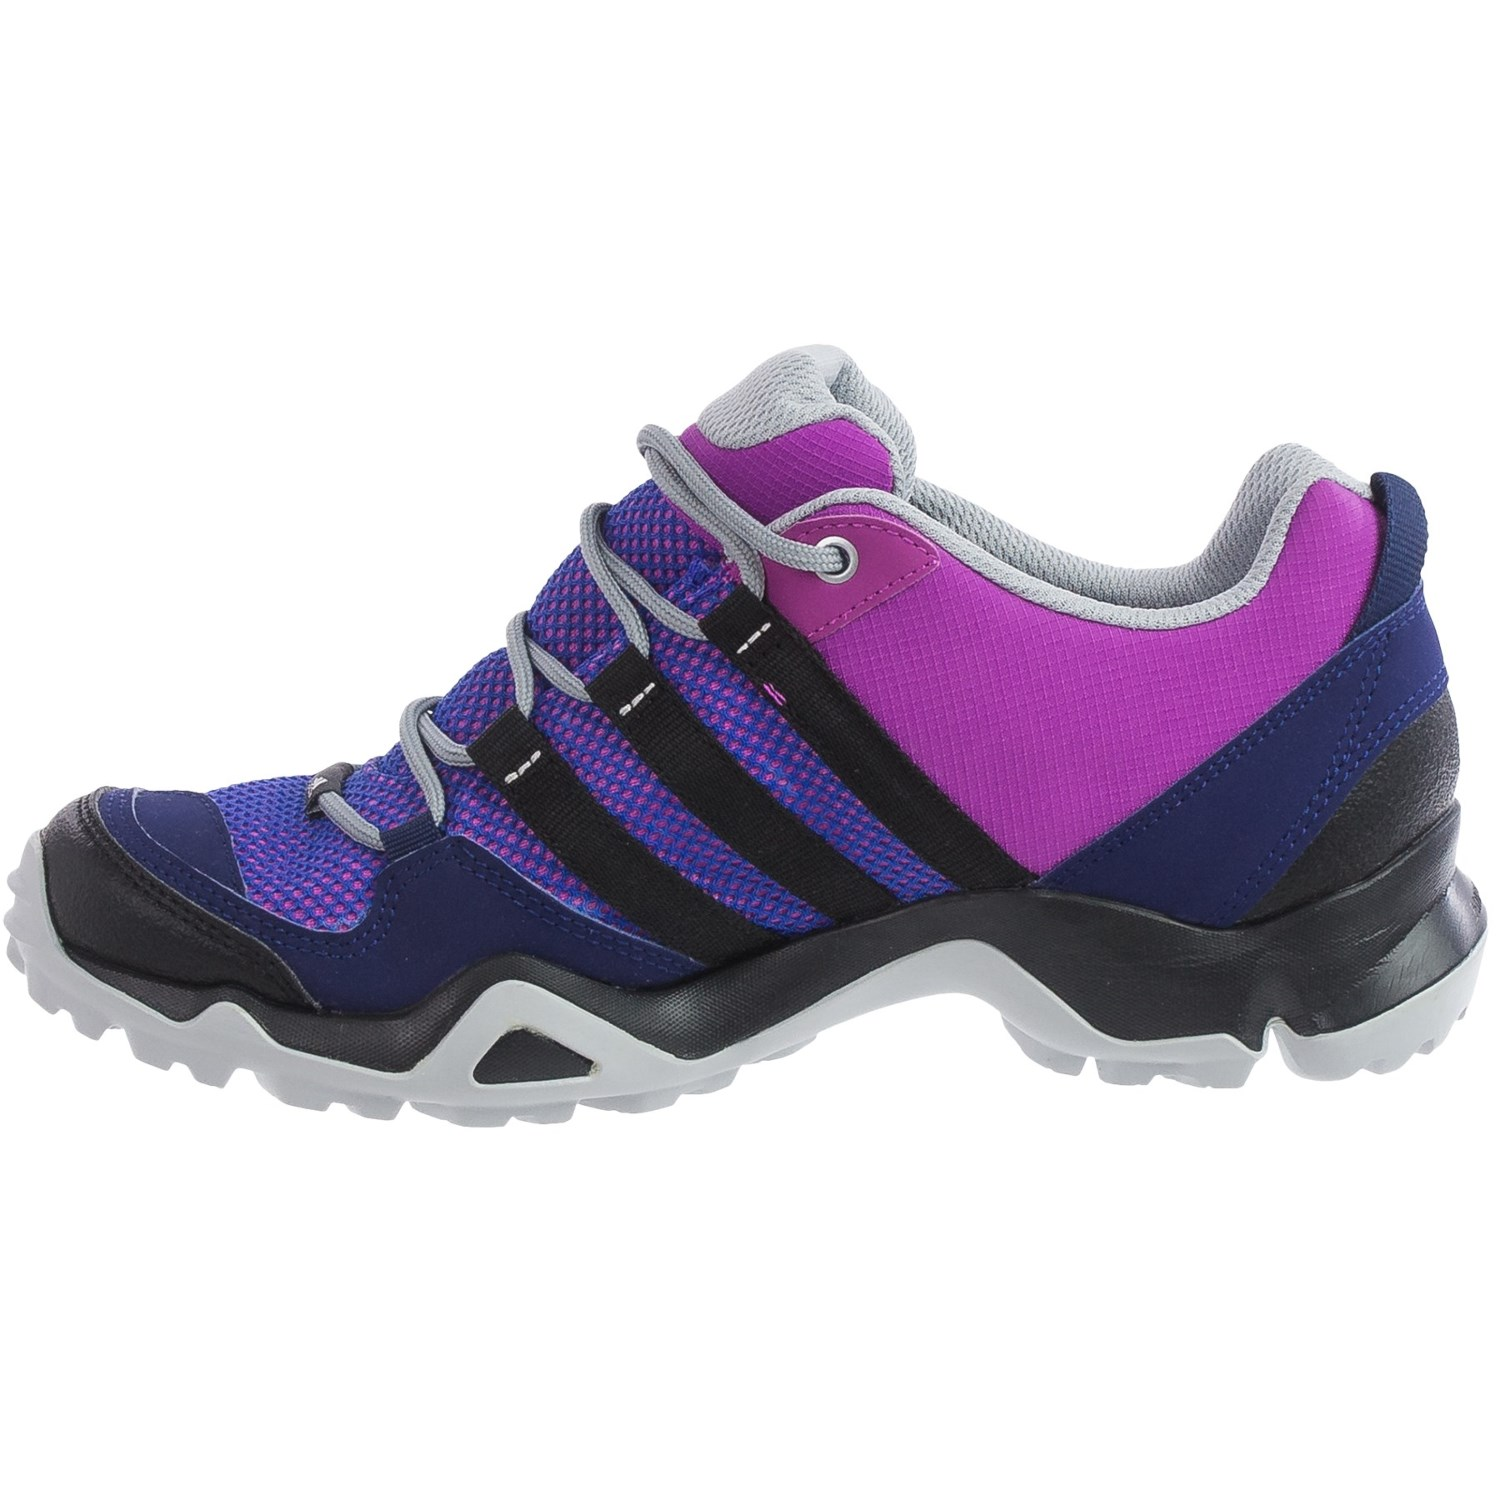 Adidas Hiking Shoes Indonesia